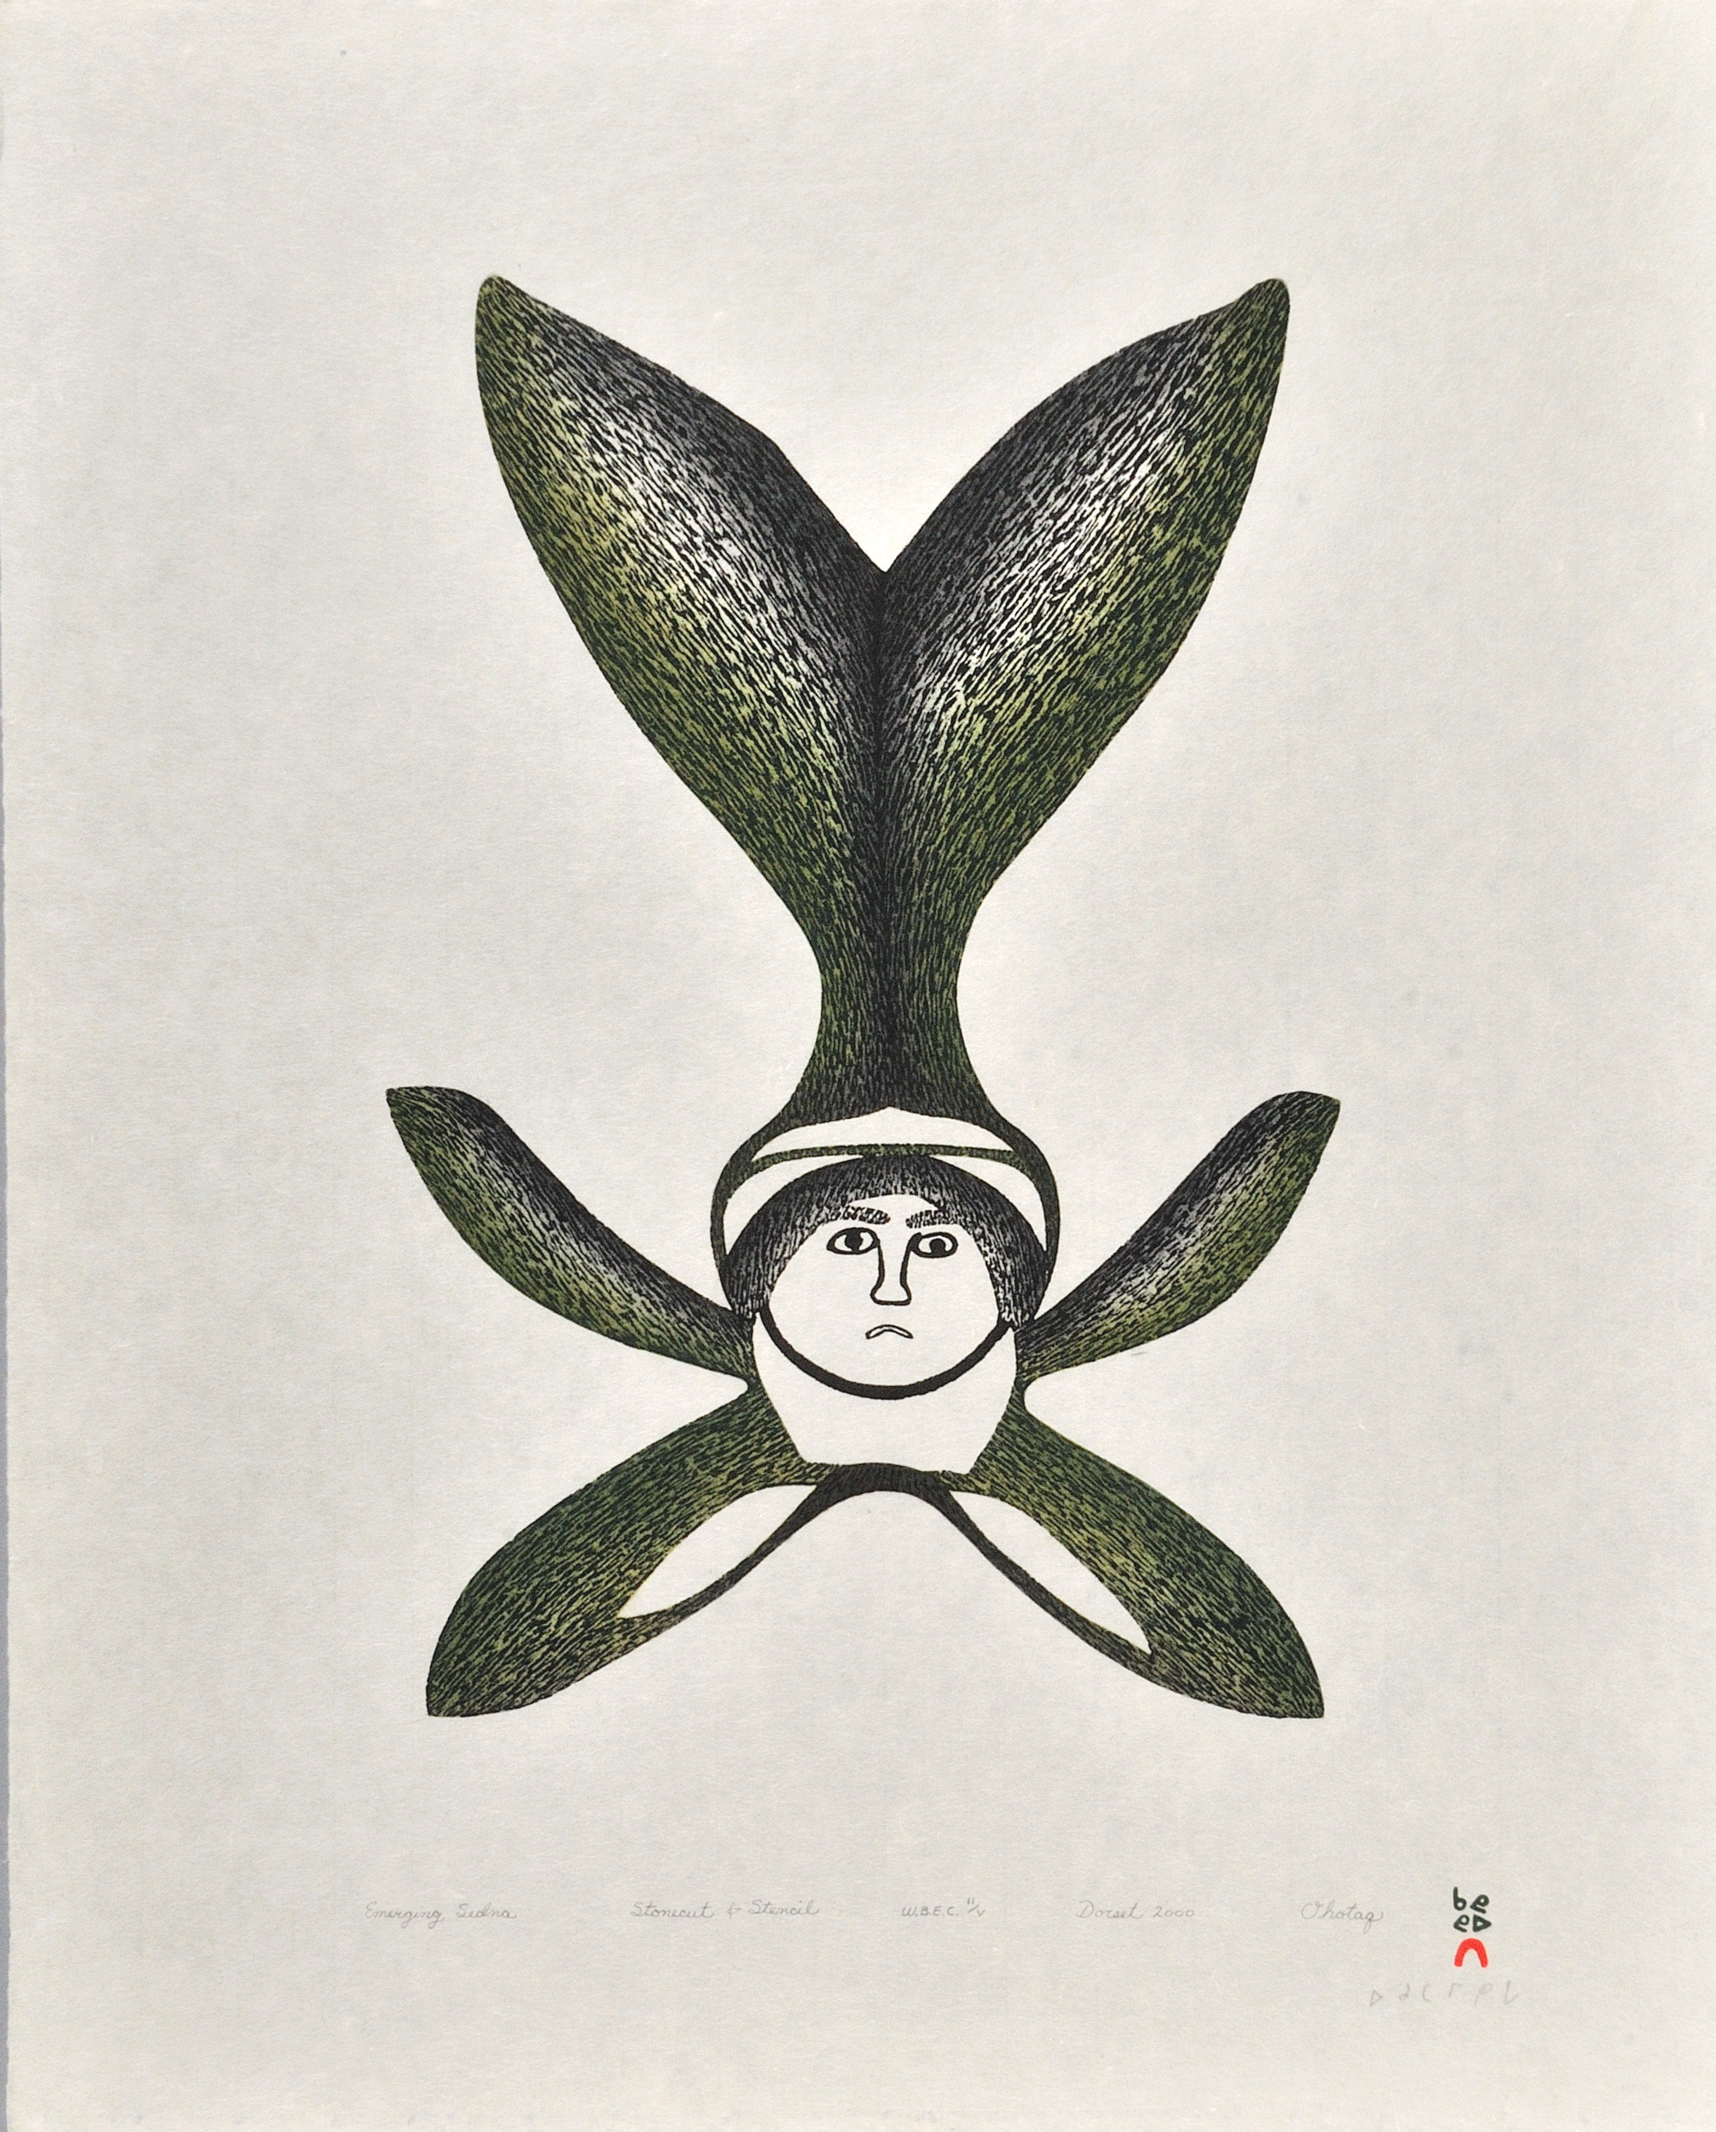 Ohotaq Mikkigak  EMERGING SEDNA Stonecut & Stencil 2000 62.2 x 49.7 cm $400.00 CDN Released in the 2000 collection Dorset ID#: 00-23